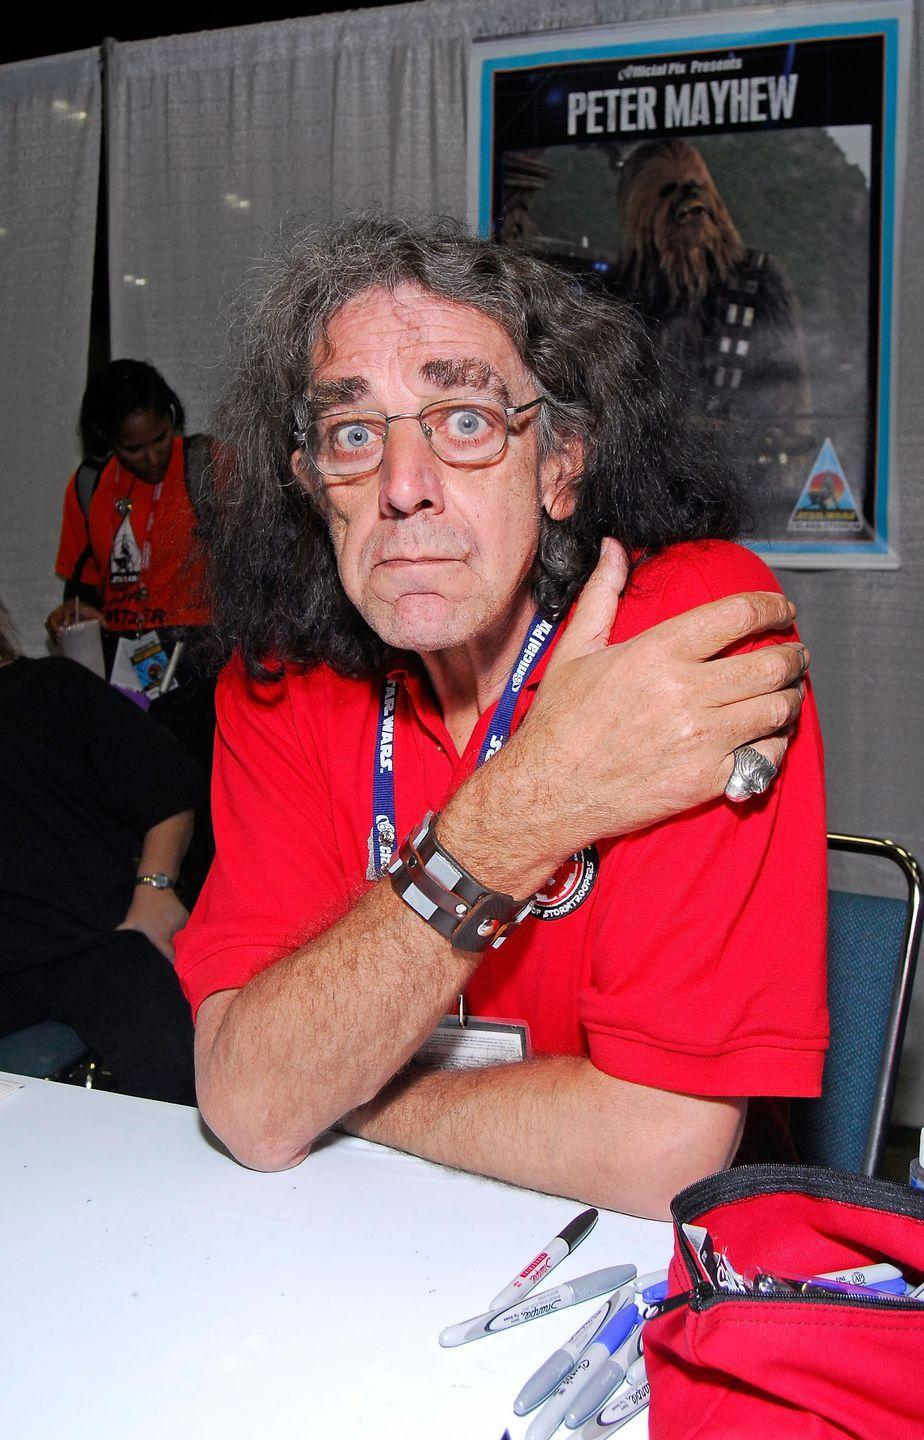 """<p>At 7' 3"""", Mayhew was uniquely qualified to bring Chewbacca to life, and his large stature was only part of the role, as his epic grunts really helped make Chewie one of the most beloved characters in the fandom. Before his passing Mayhew suffered from many knee issues and the 7 foot tall Joonas Suotamo stepped into the hairy wookie suit during <em>The Force Awakens</em>.</p>"""